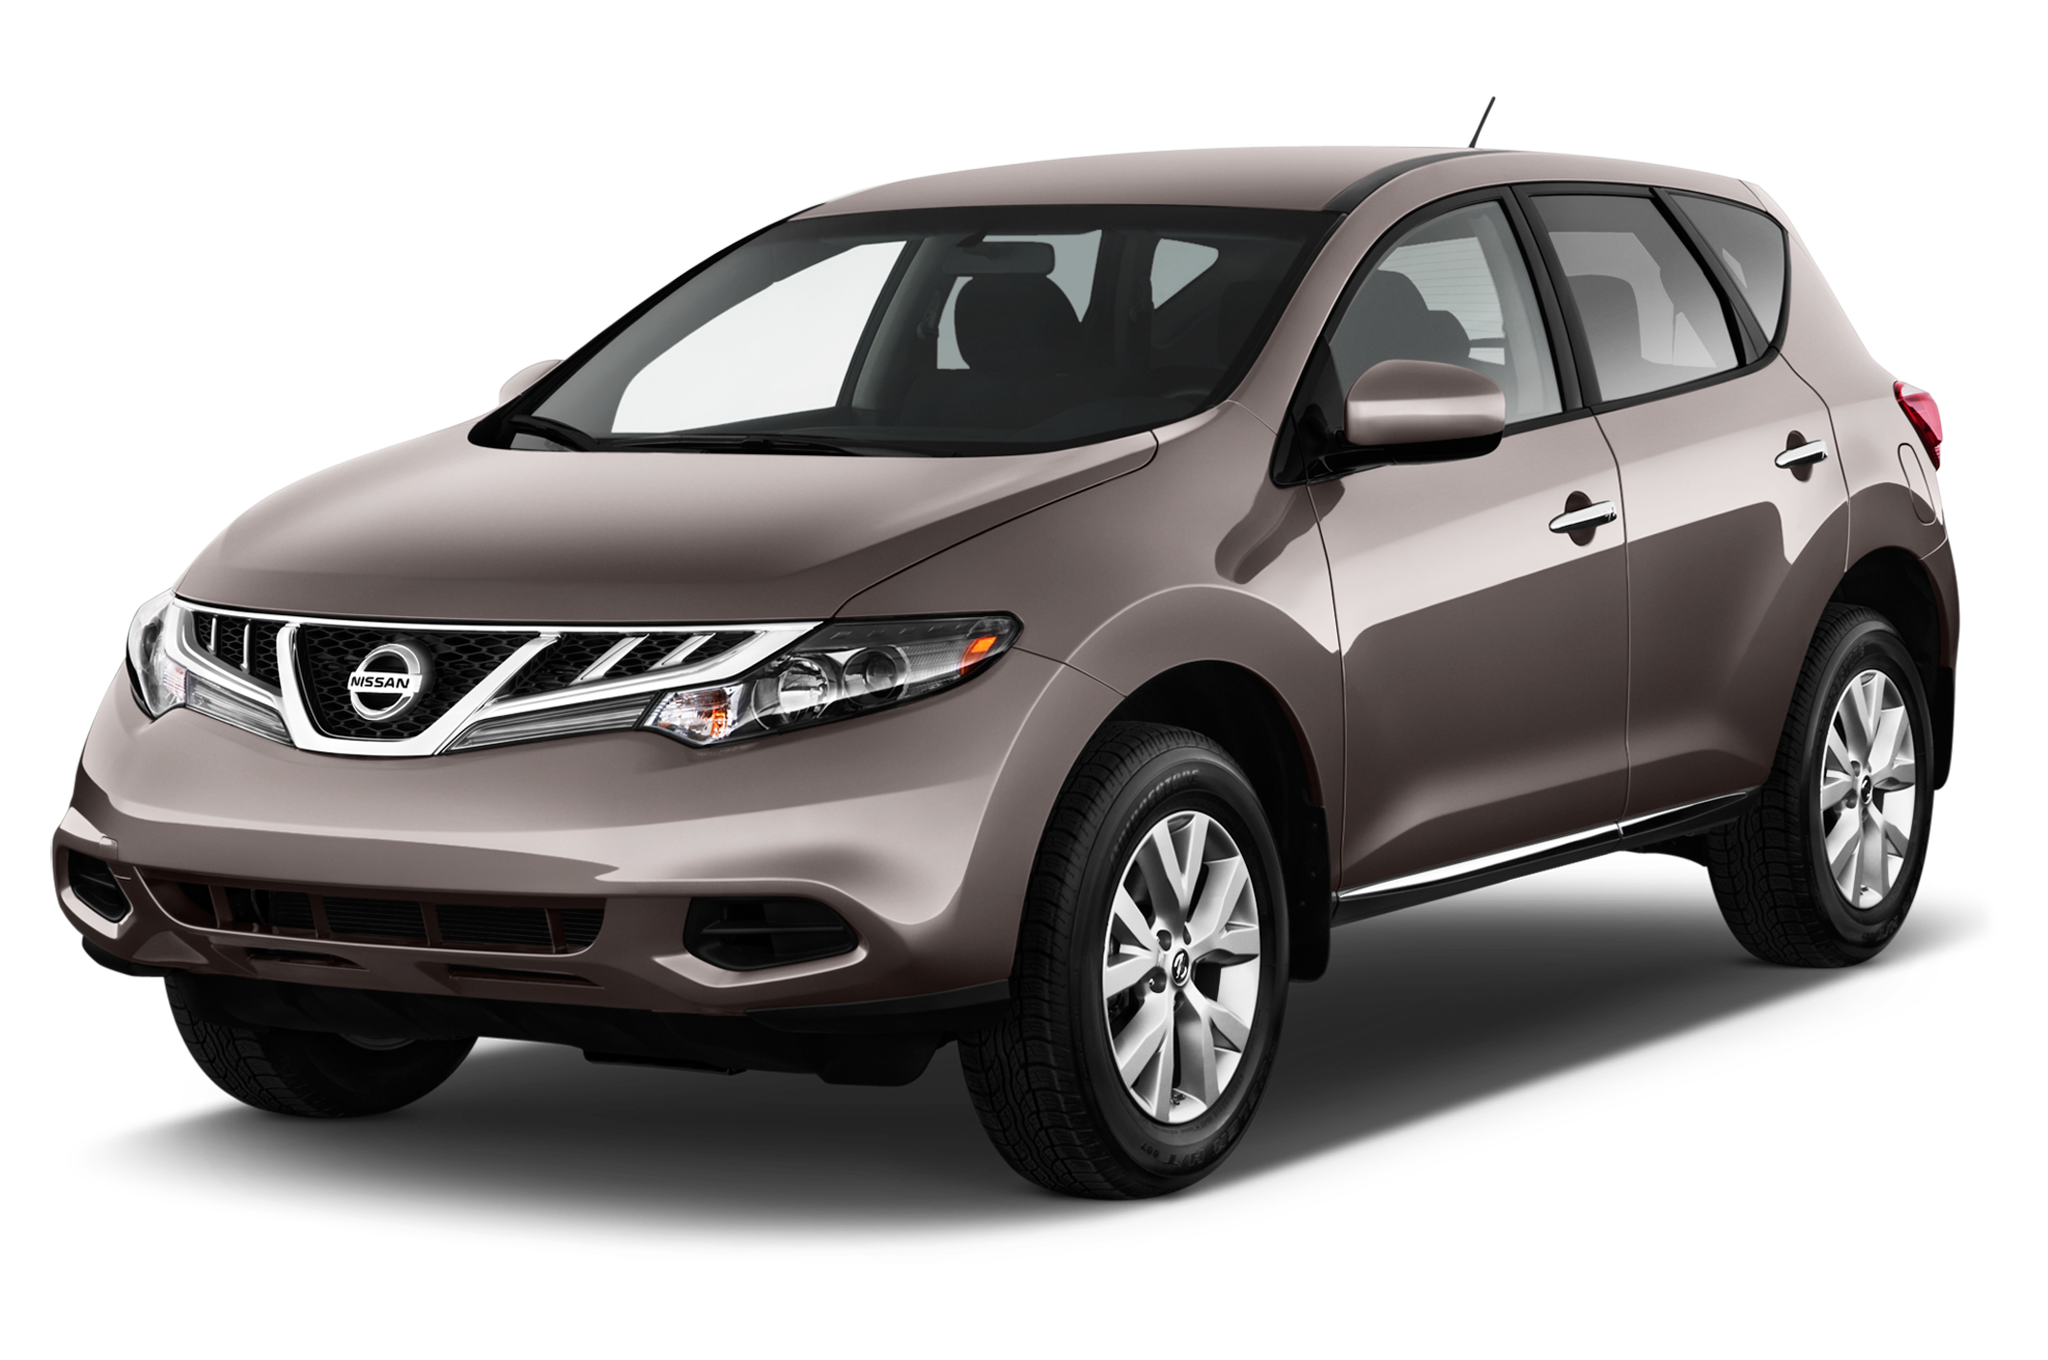 priced 2011 nissan murano crosscabriolet will cost 47 190. Black Bedroom Furniture Sets. Home Design Ideas